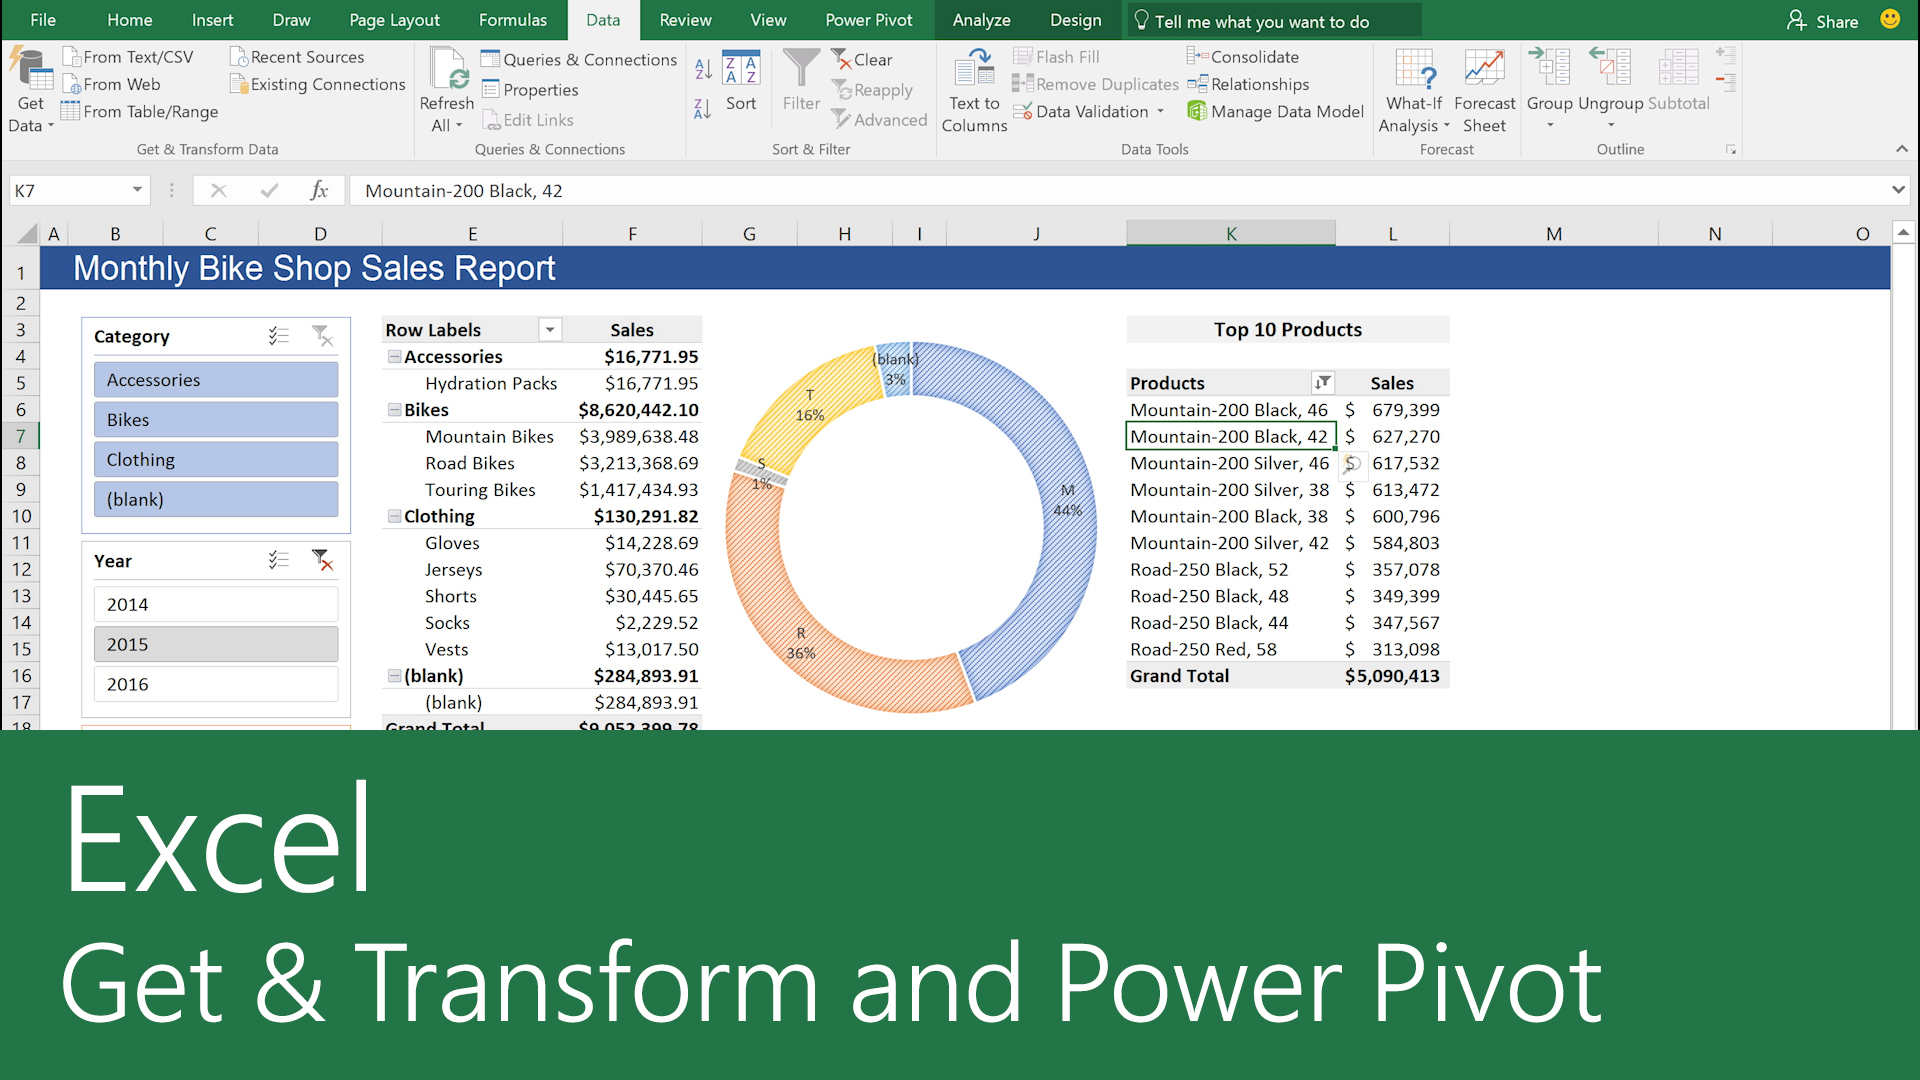 Get & Transform and Power Pivot in Excel - Excel